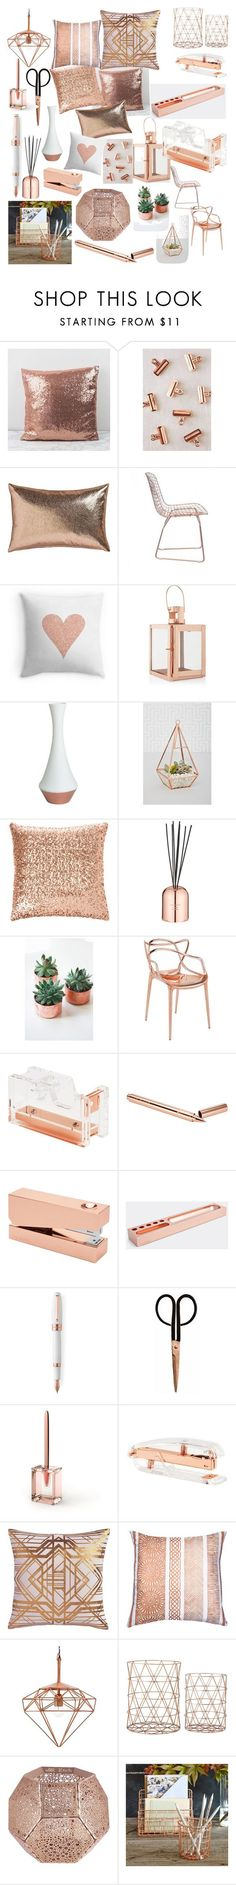 Copper finishes by caitlin1d23-07-10 ❤ liked on Polyvore featuring interior, interiors, interior design, home, home decor, interior decorating, Urban Outfitters, CB2, Zuo and Pillow Decor